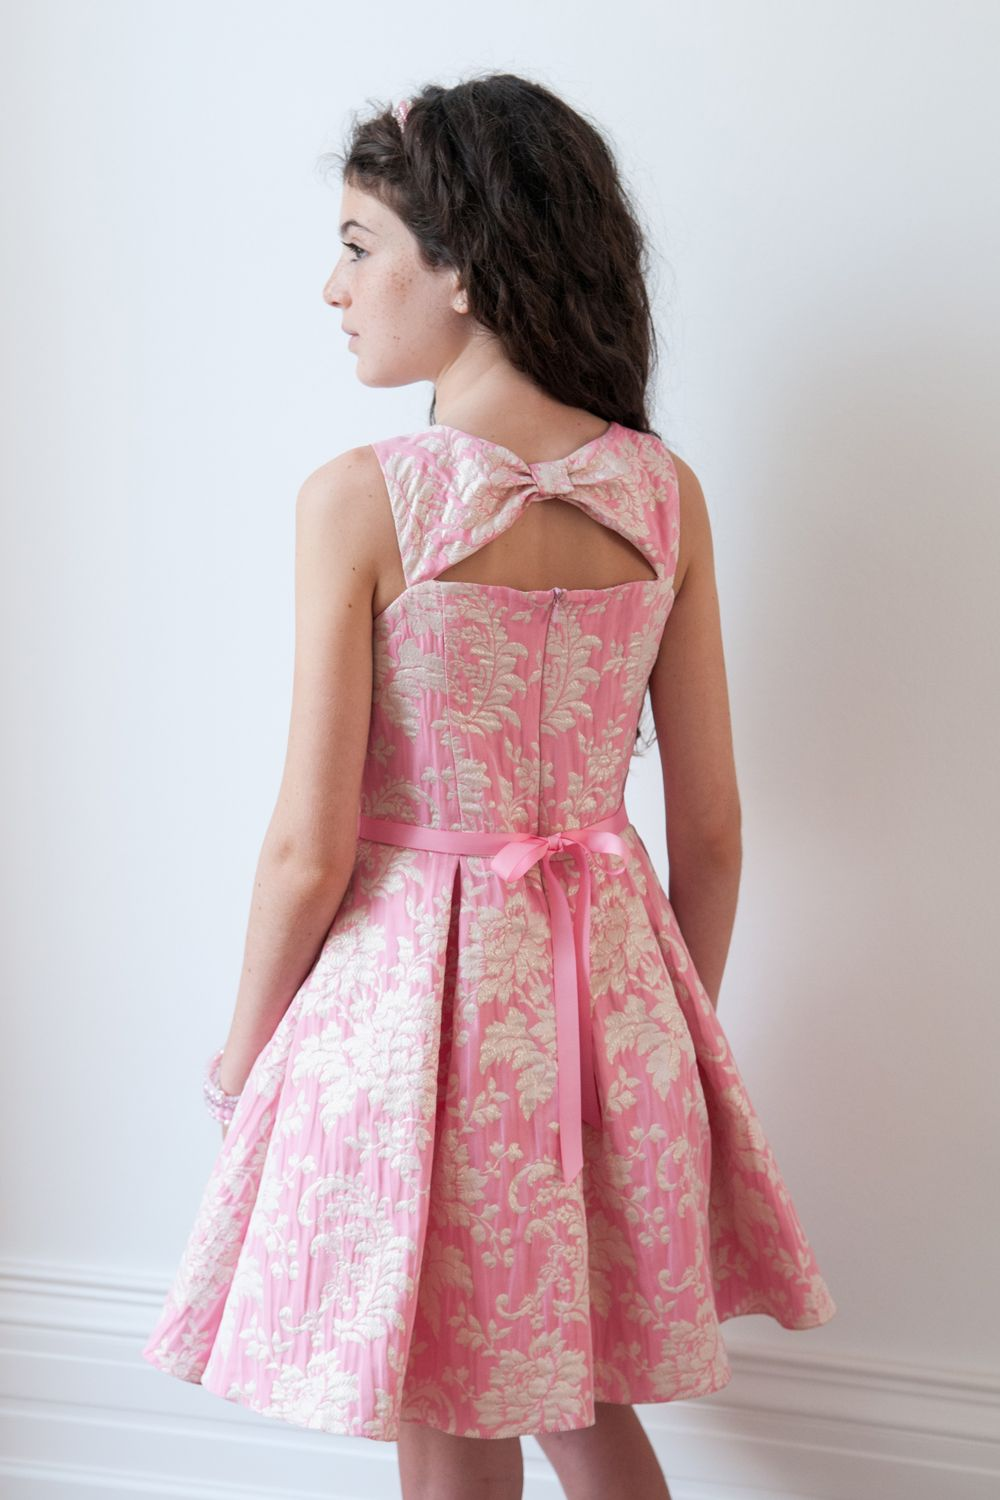 Pink Dream Prom Dress | Modelo, Vestidos de niñas y Vestiditos